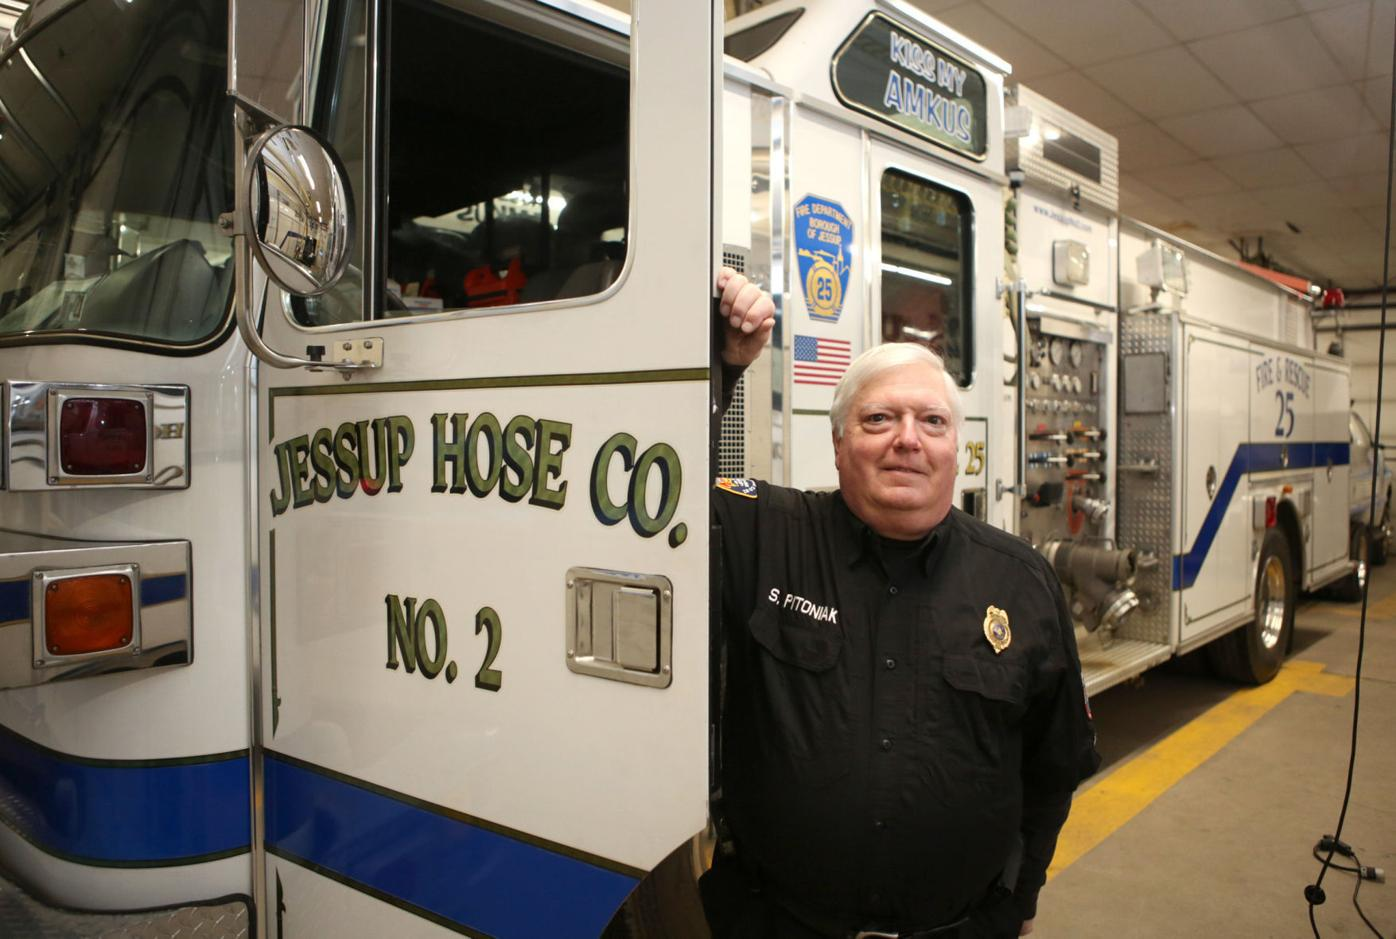 Longtime Jessup firefighter to step down next week after 29 years as chief